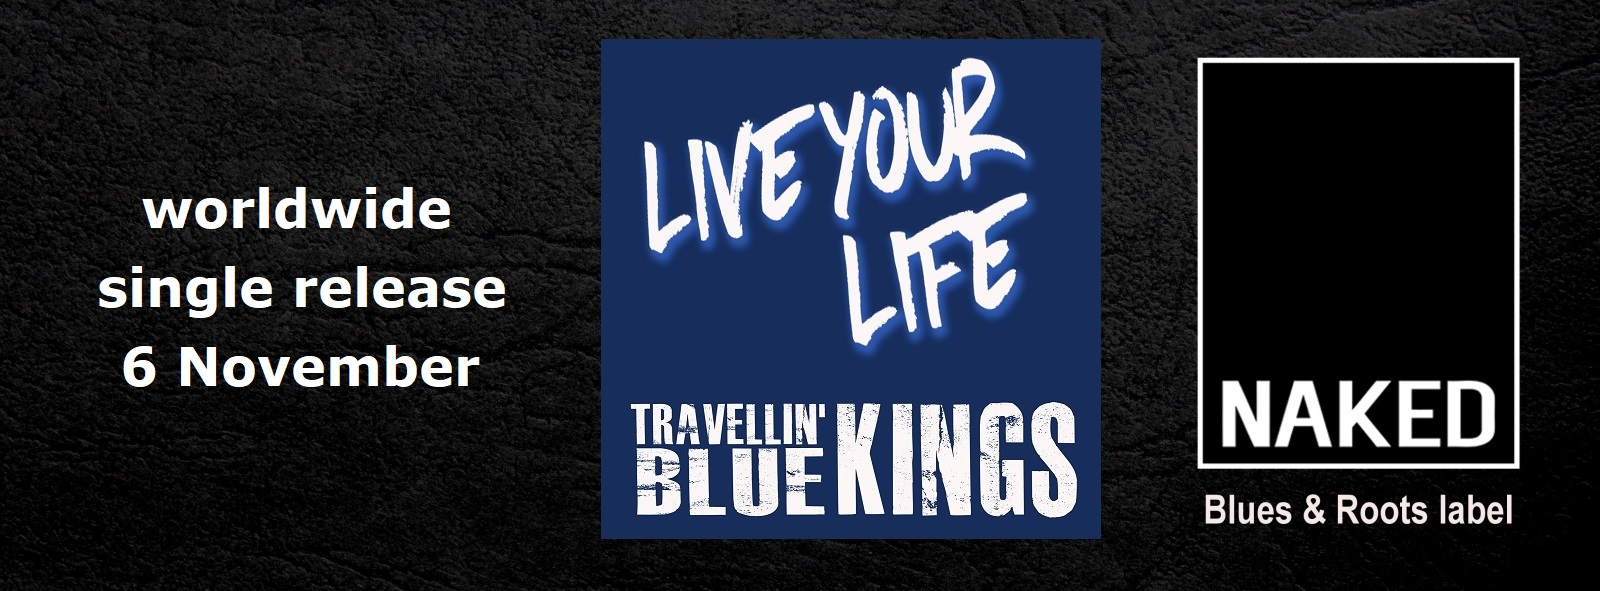 Travellin' Blue Kings – Live Your Life